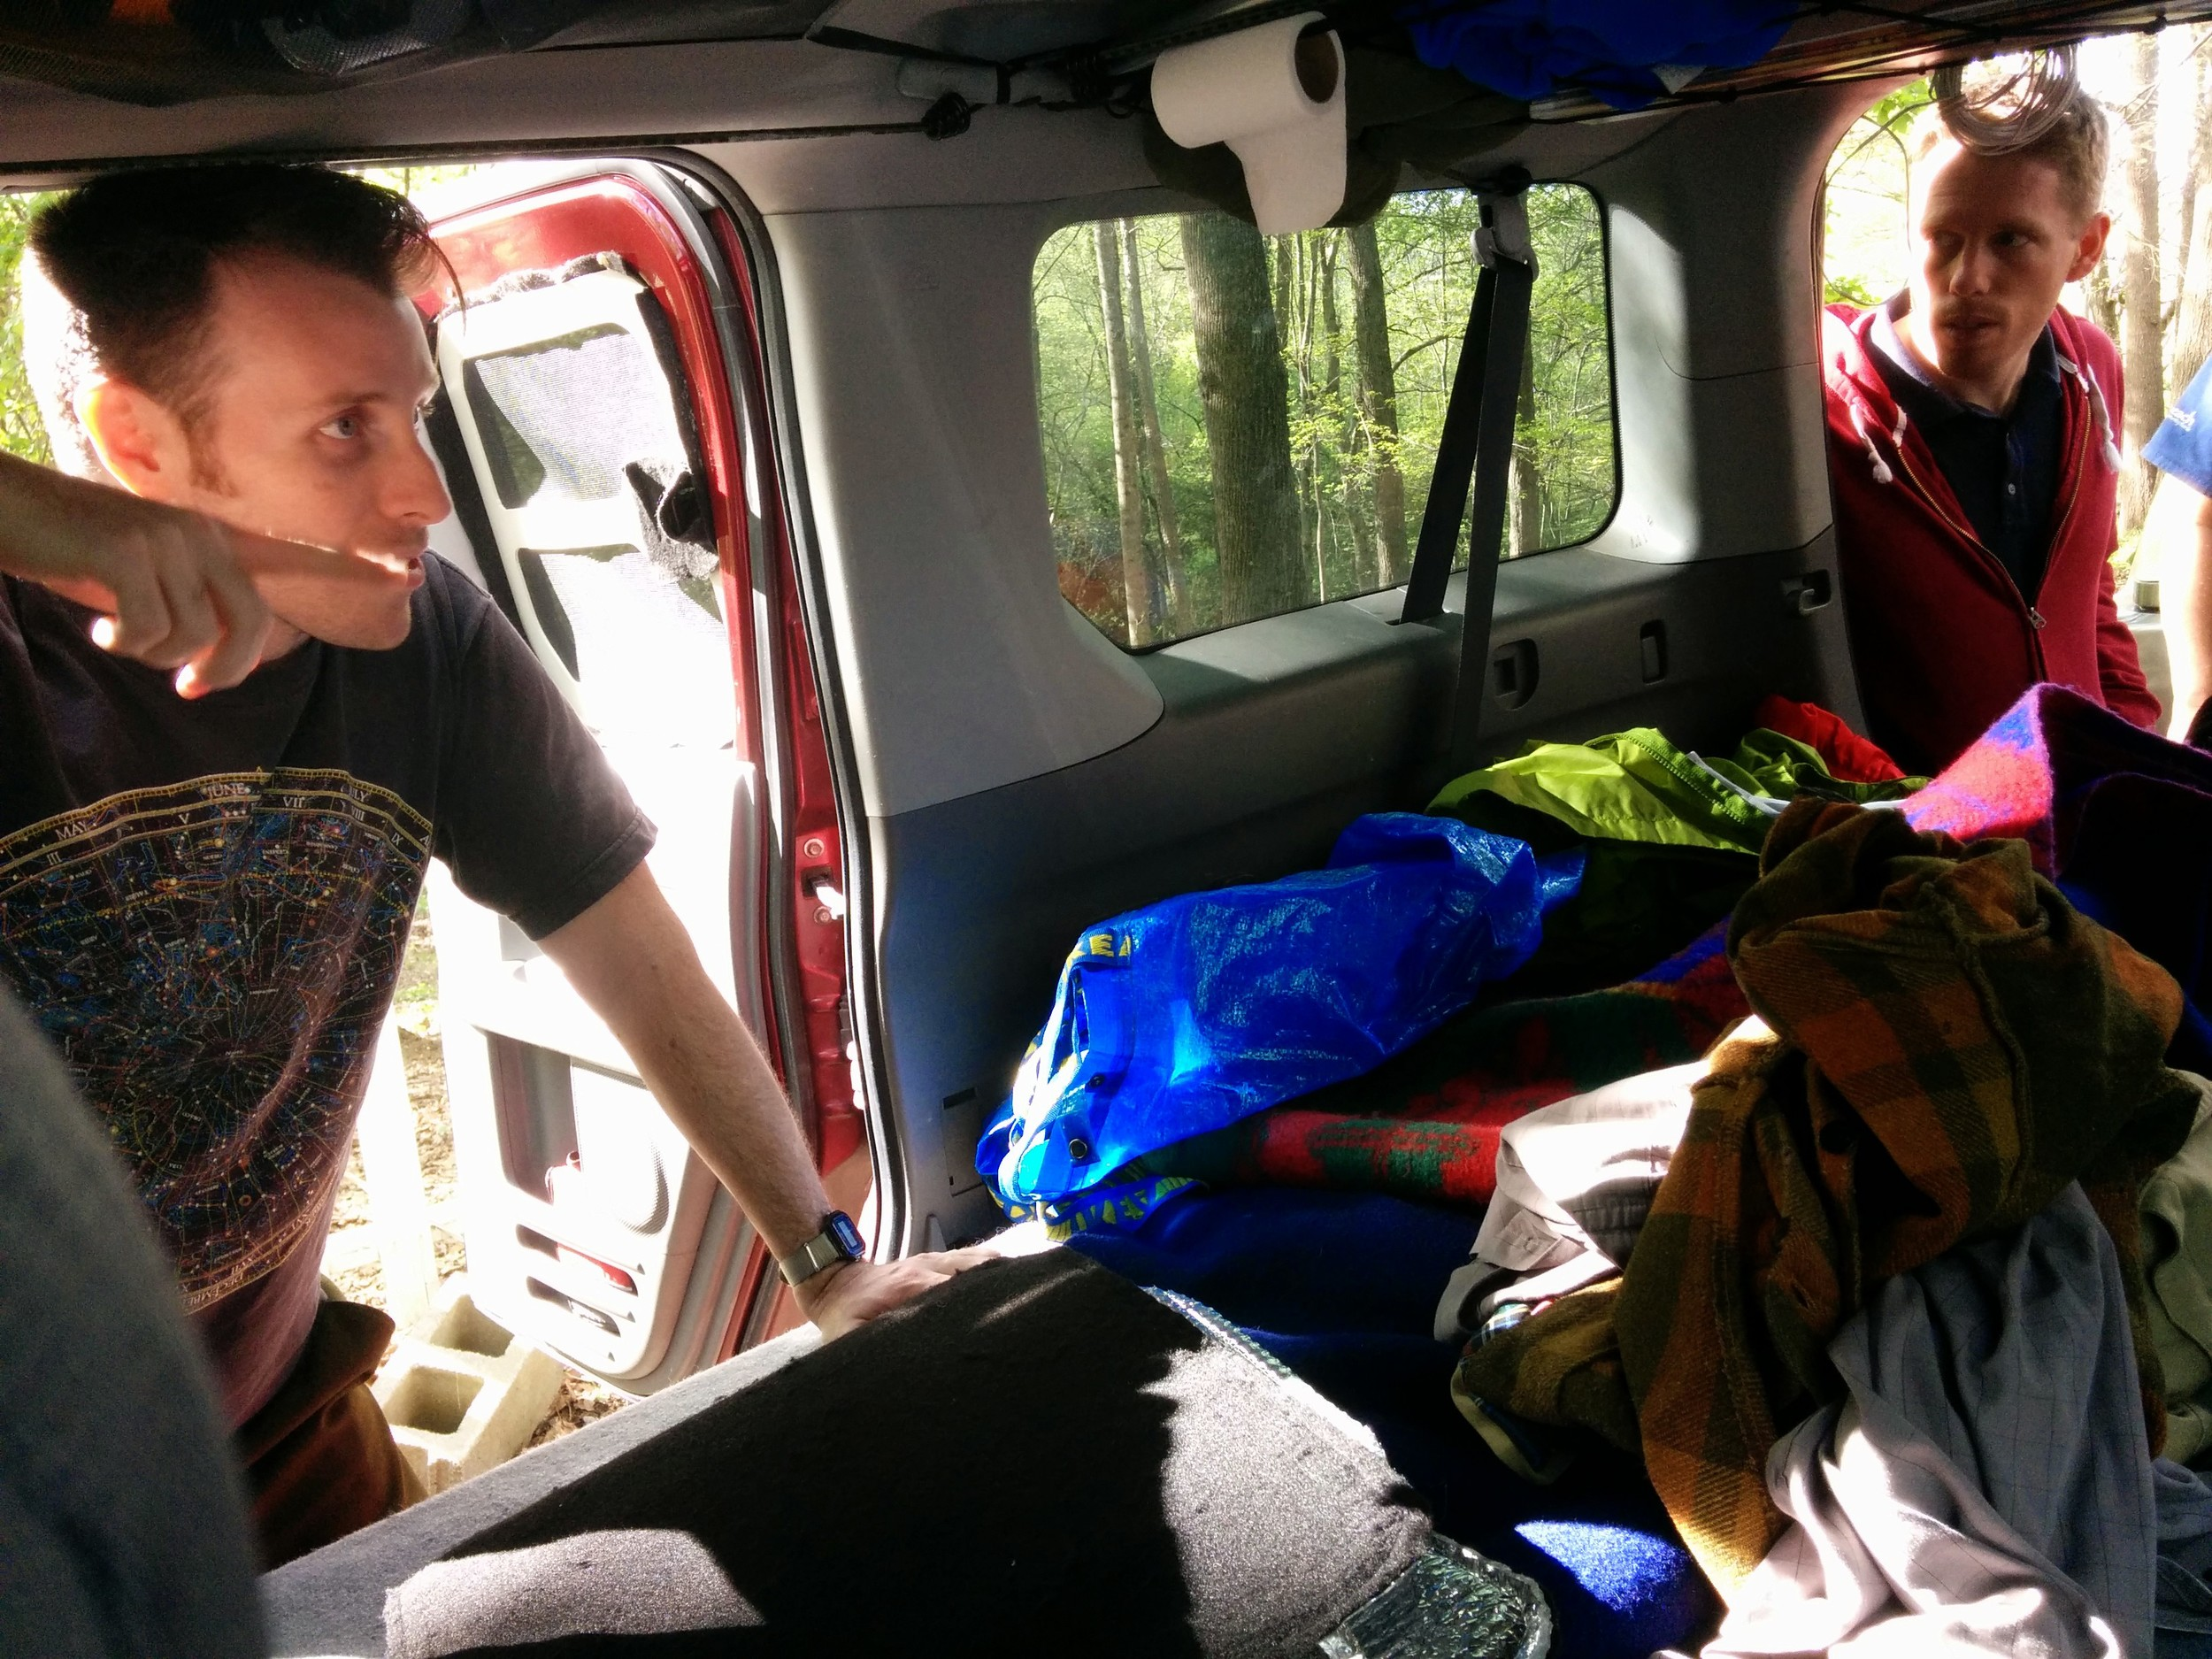 Giving a tour of our Honda Element micro-camper that we travel and live in while we're on the road for longer trips.